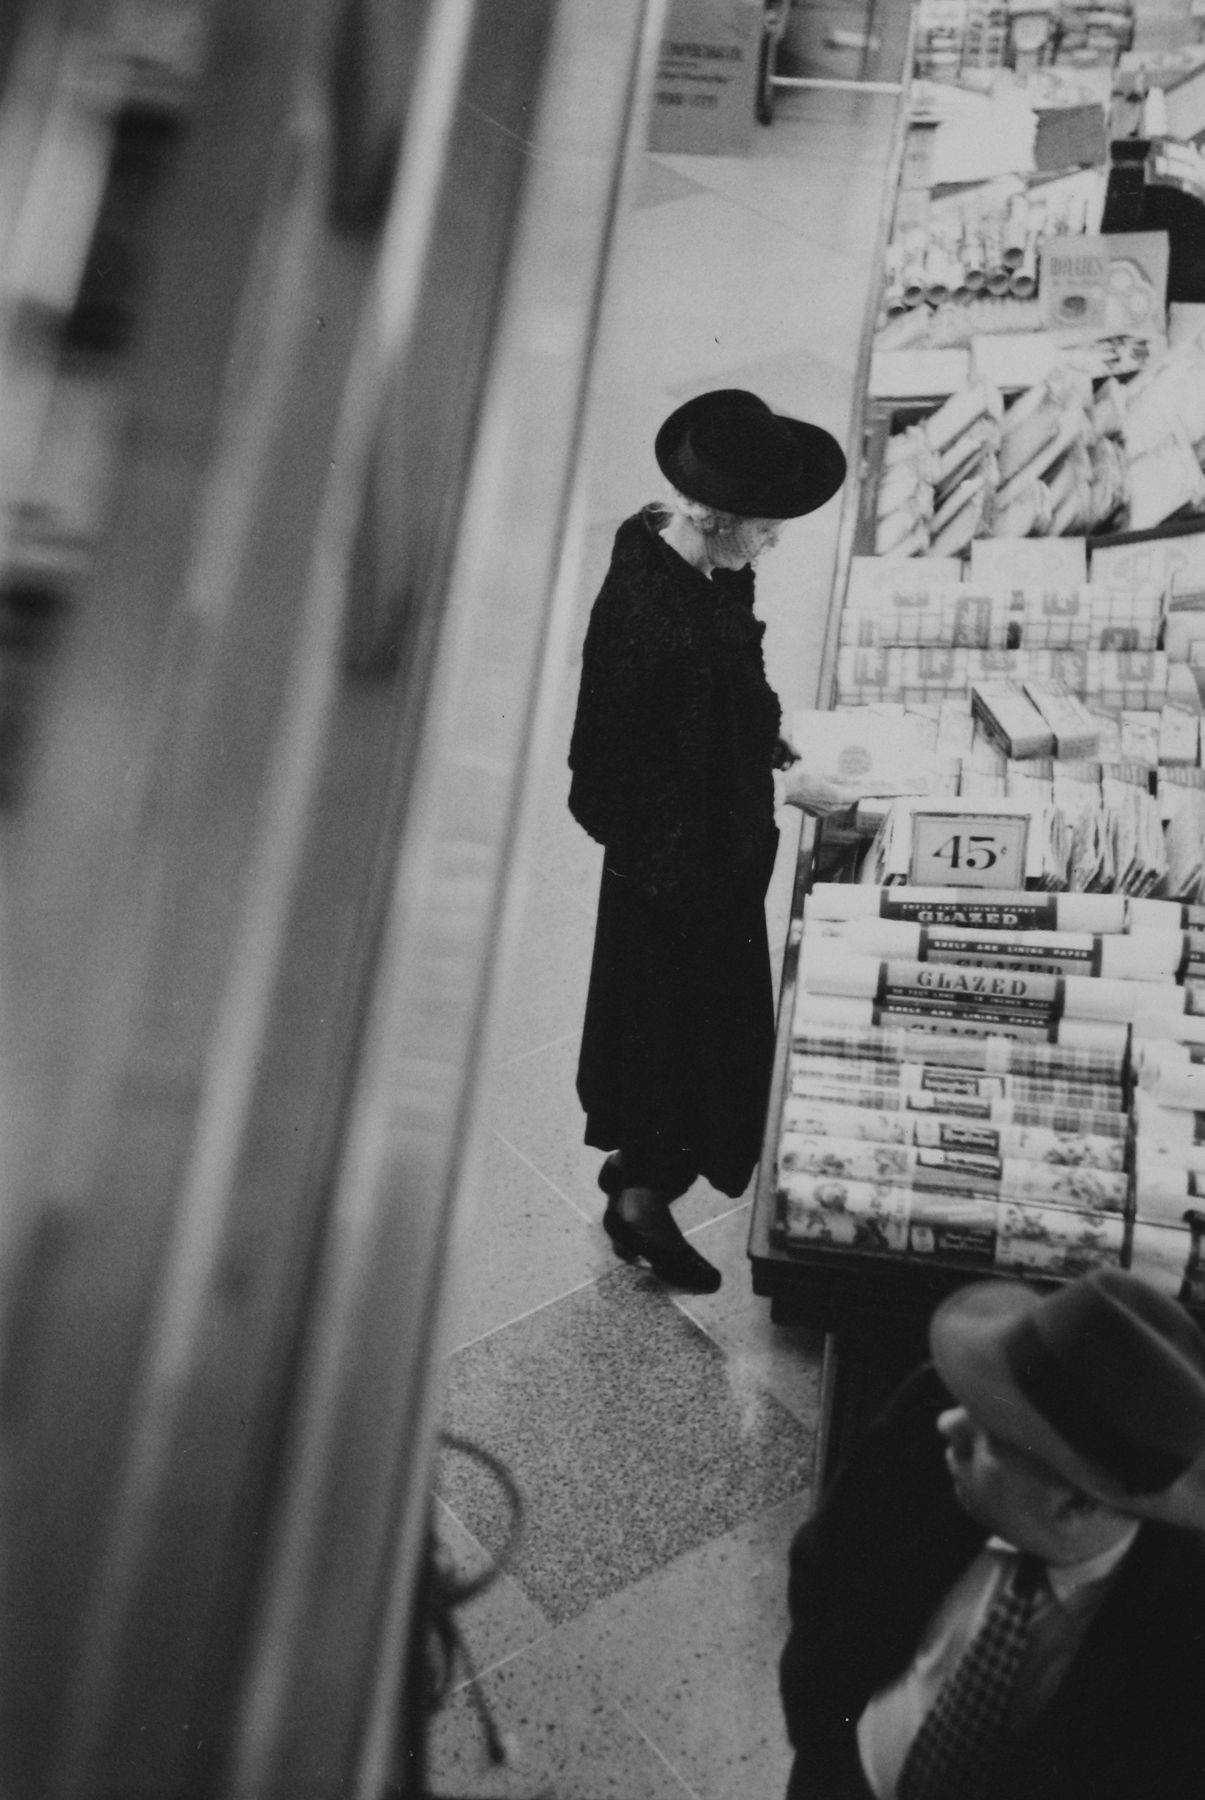 5. 'Newspapers', Saul Leiter:Dave Dye